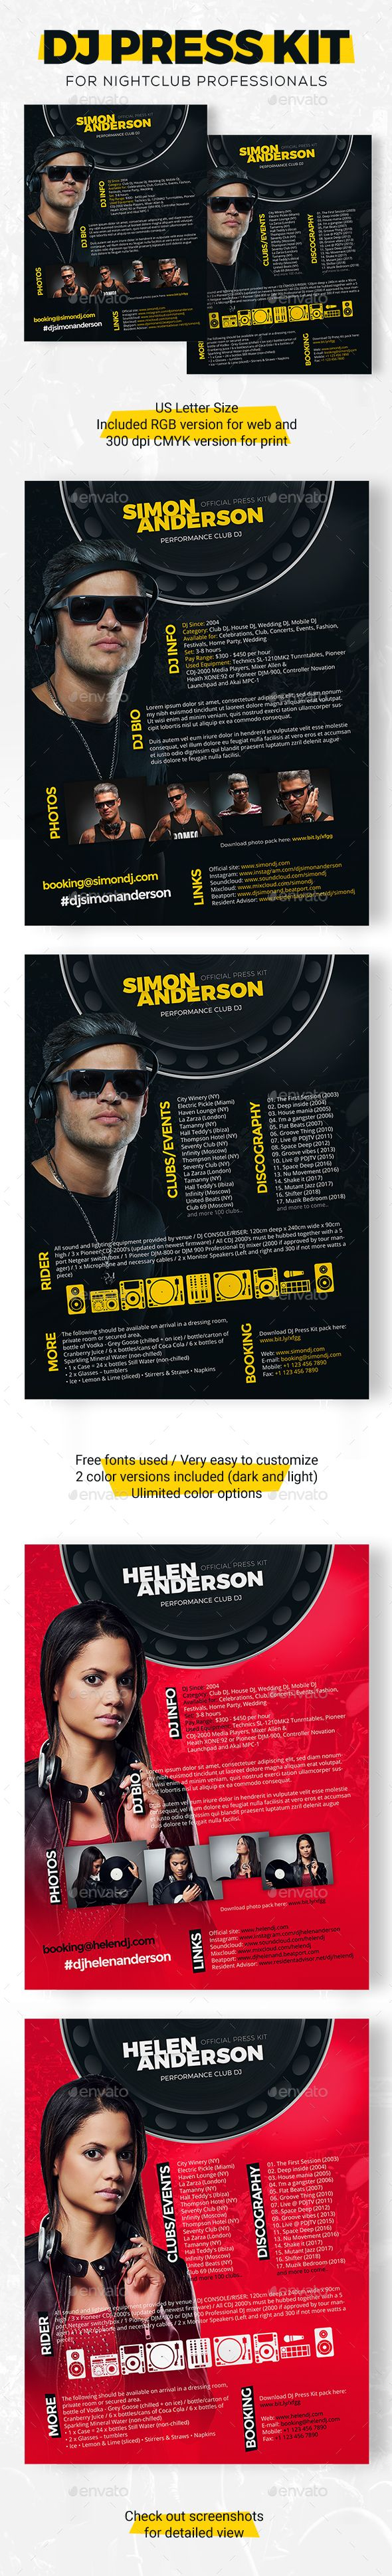 Roll   DJ Press Kit / DJ Resume / DJ Rider PSD Template  Dj Resume